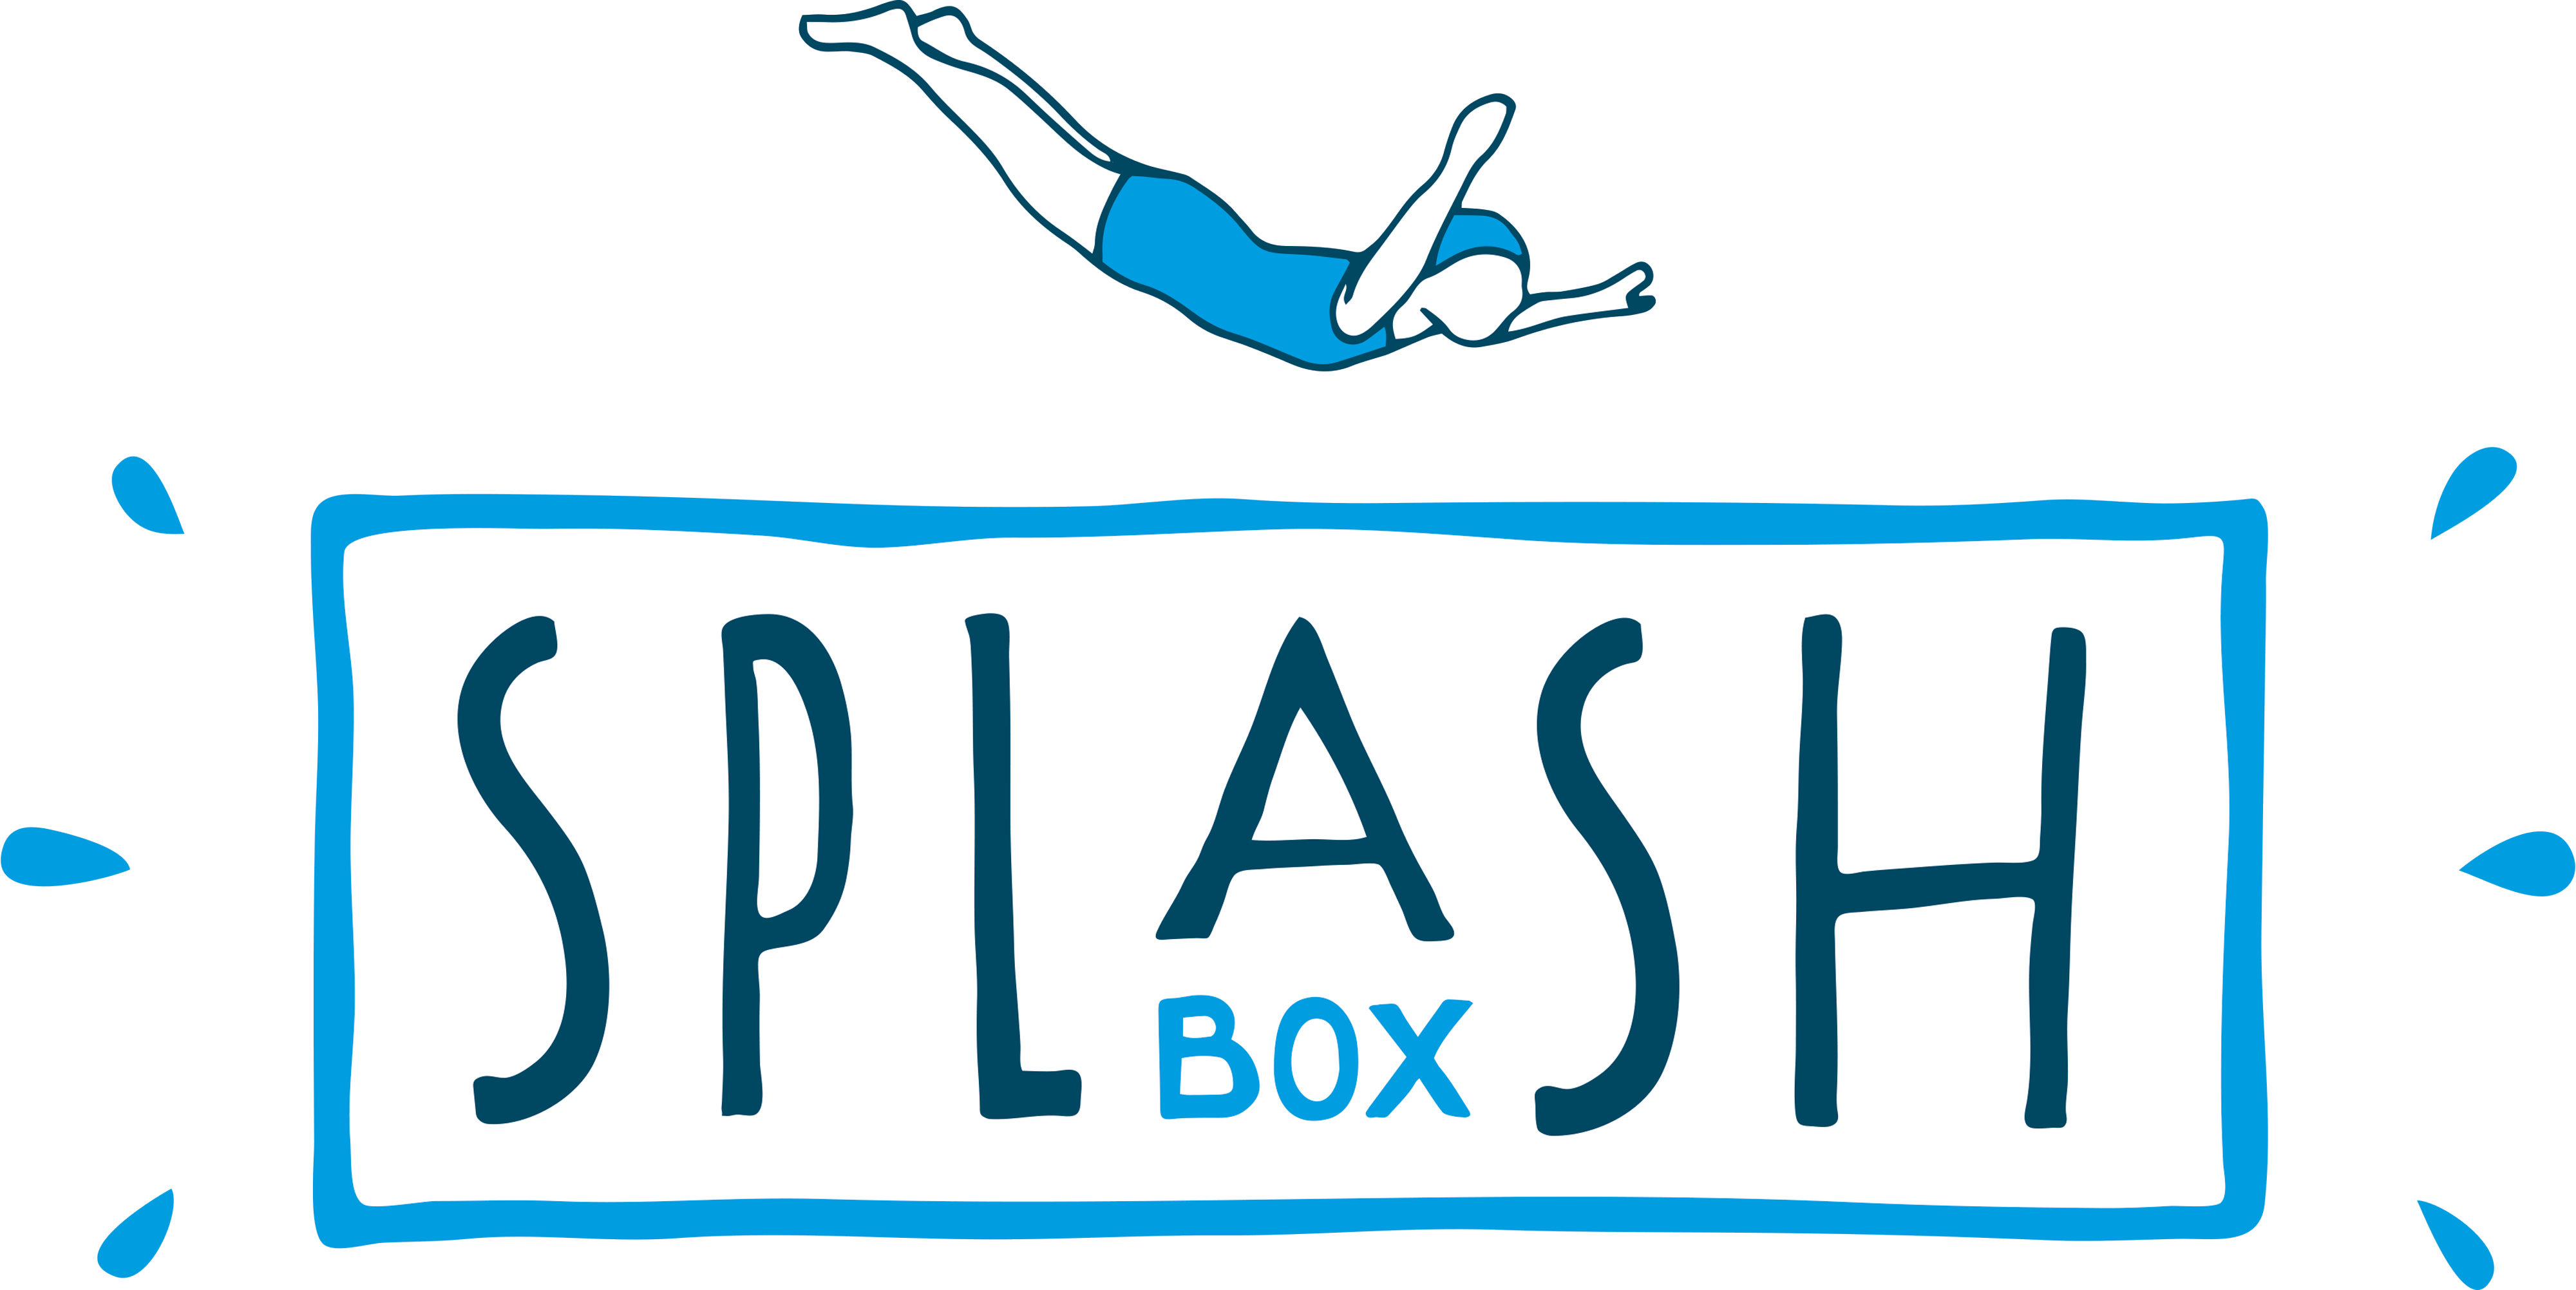 Splash Box